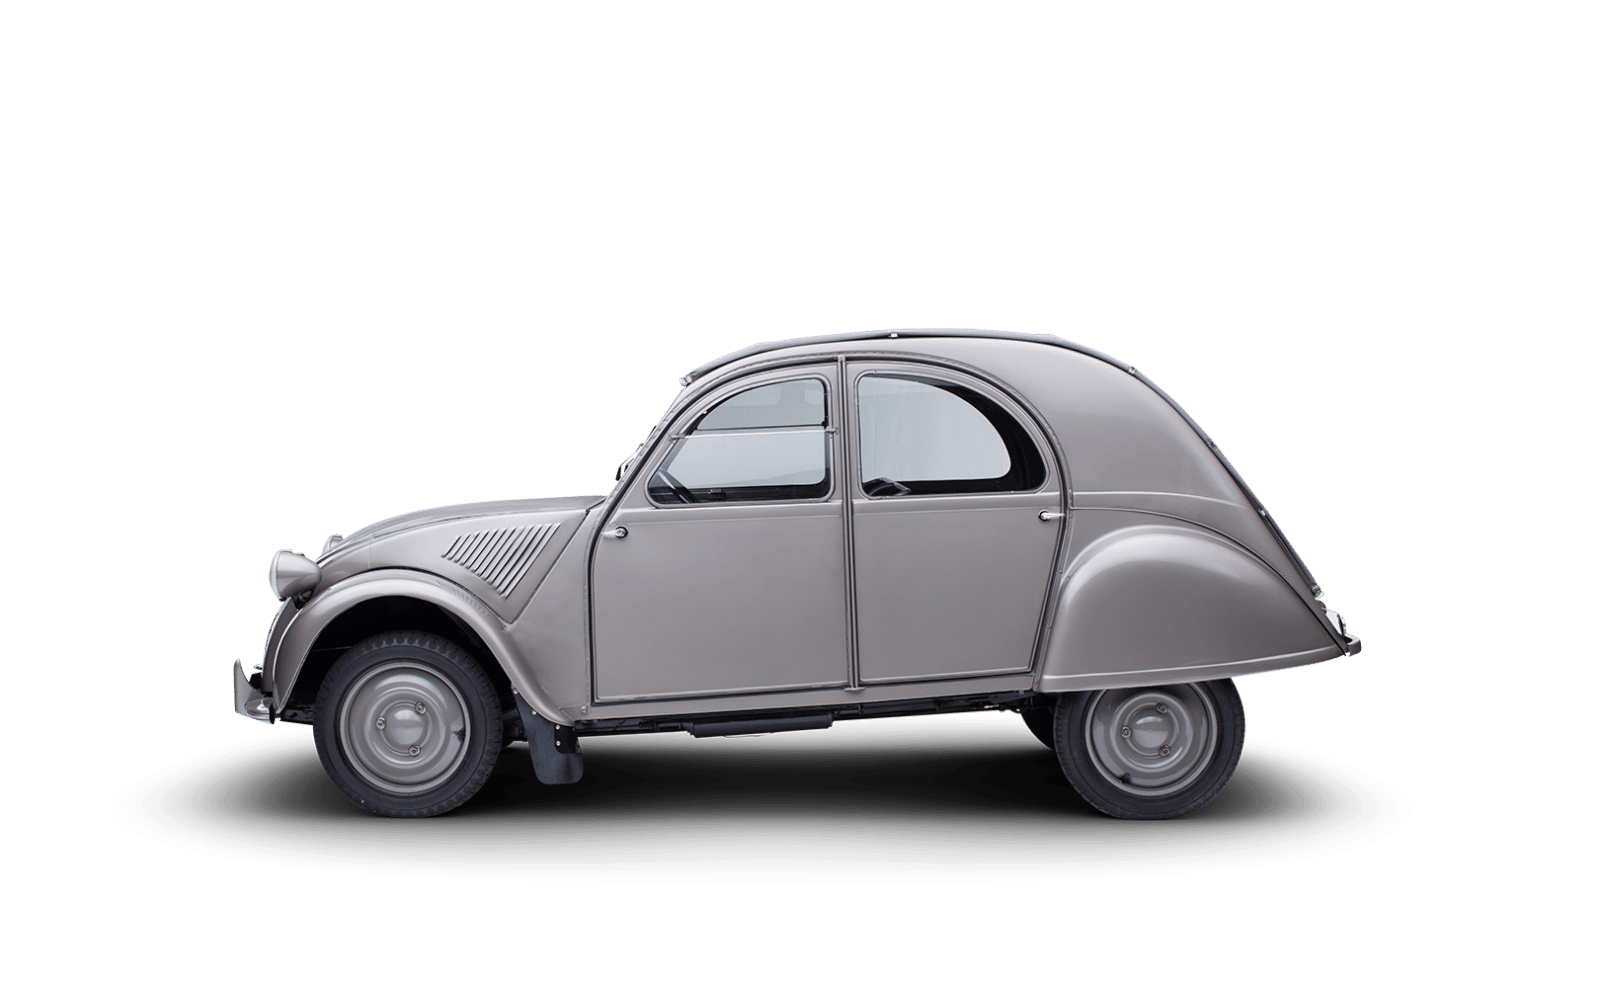 citro n 2cv photos details and equipment citr en origins. Black Bedroom Furniture Sets. Home Design Ideas